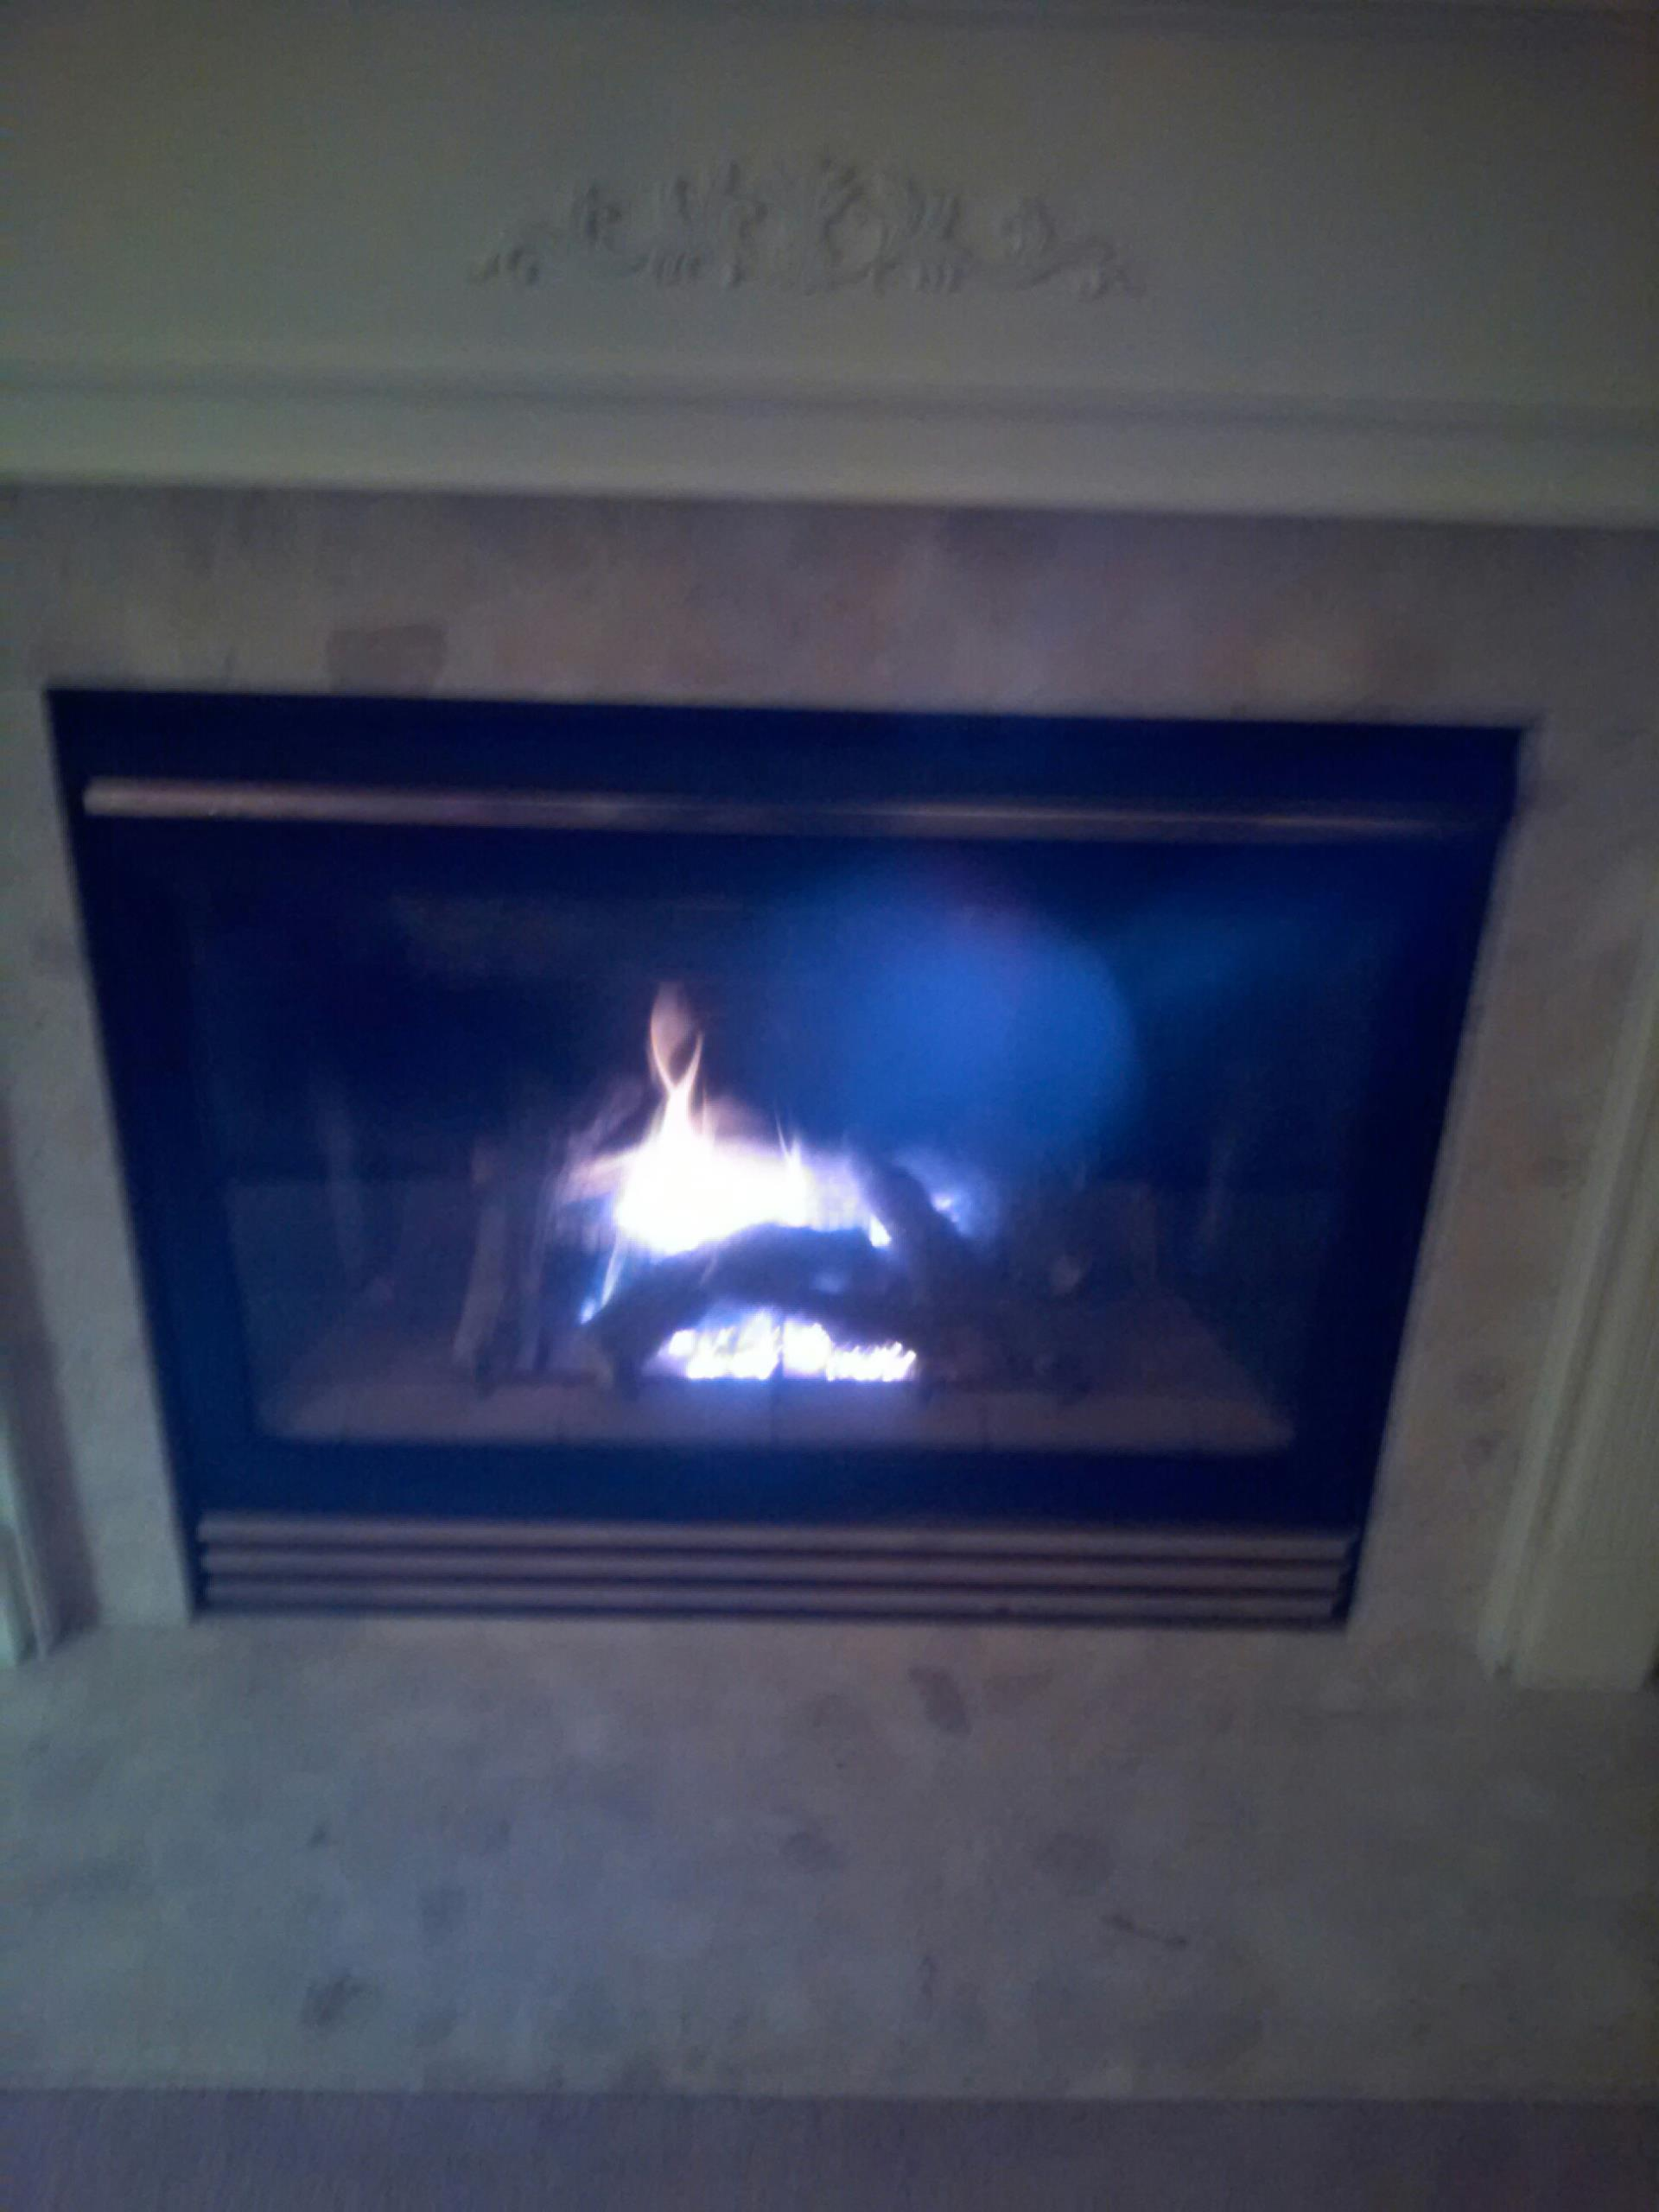 Gambrills, MD - Gambrills Maryland gas fire place insert & gas log set installation repair service call.Fireplace service